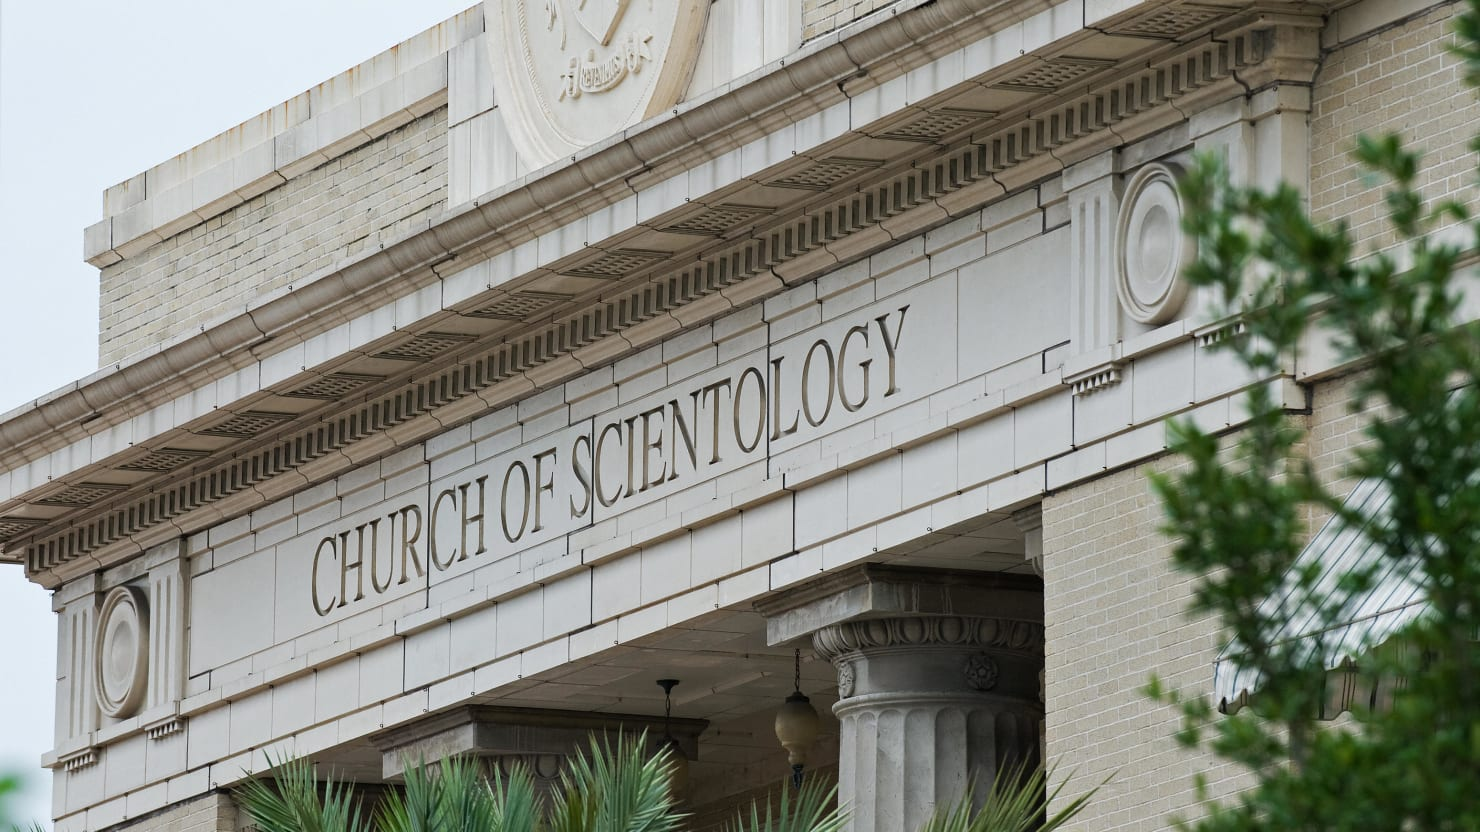 Scientology Cruise Ship Quarantined in St. Lucia After ...